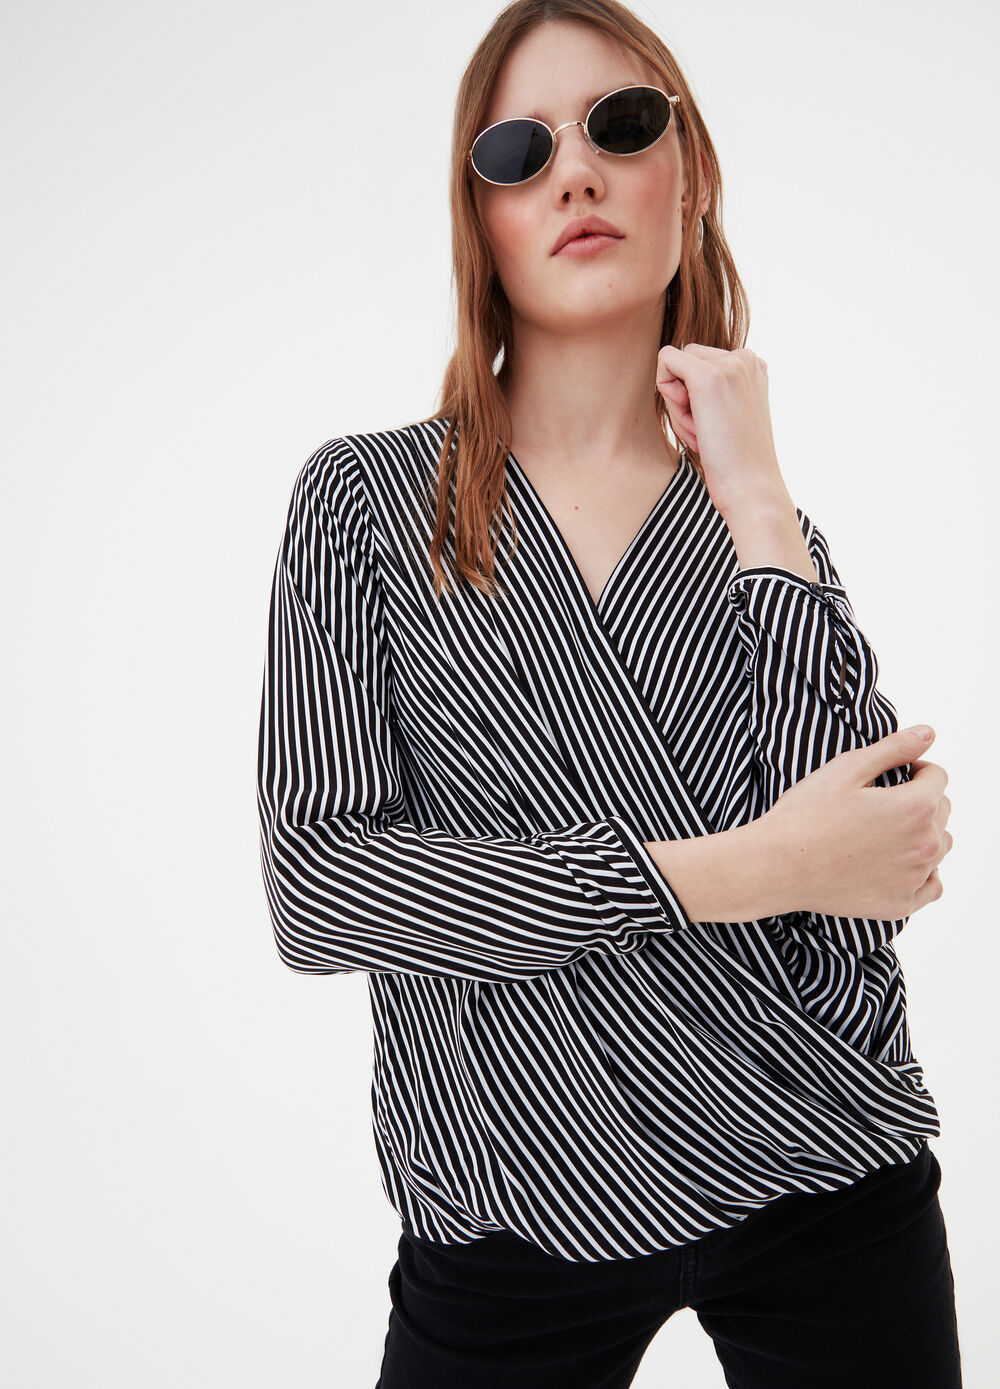 Crossover blouse in 100% viscose